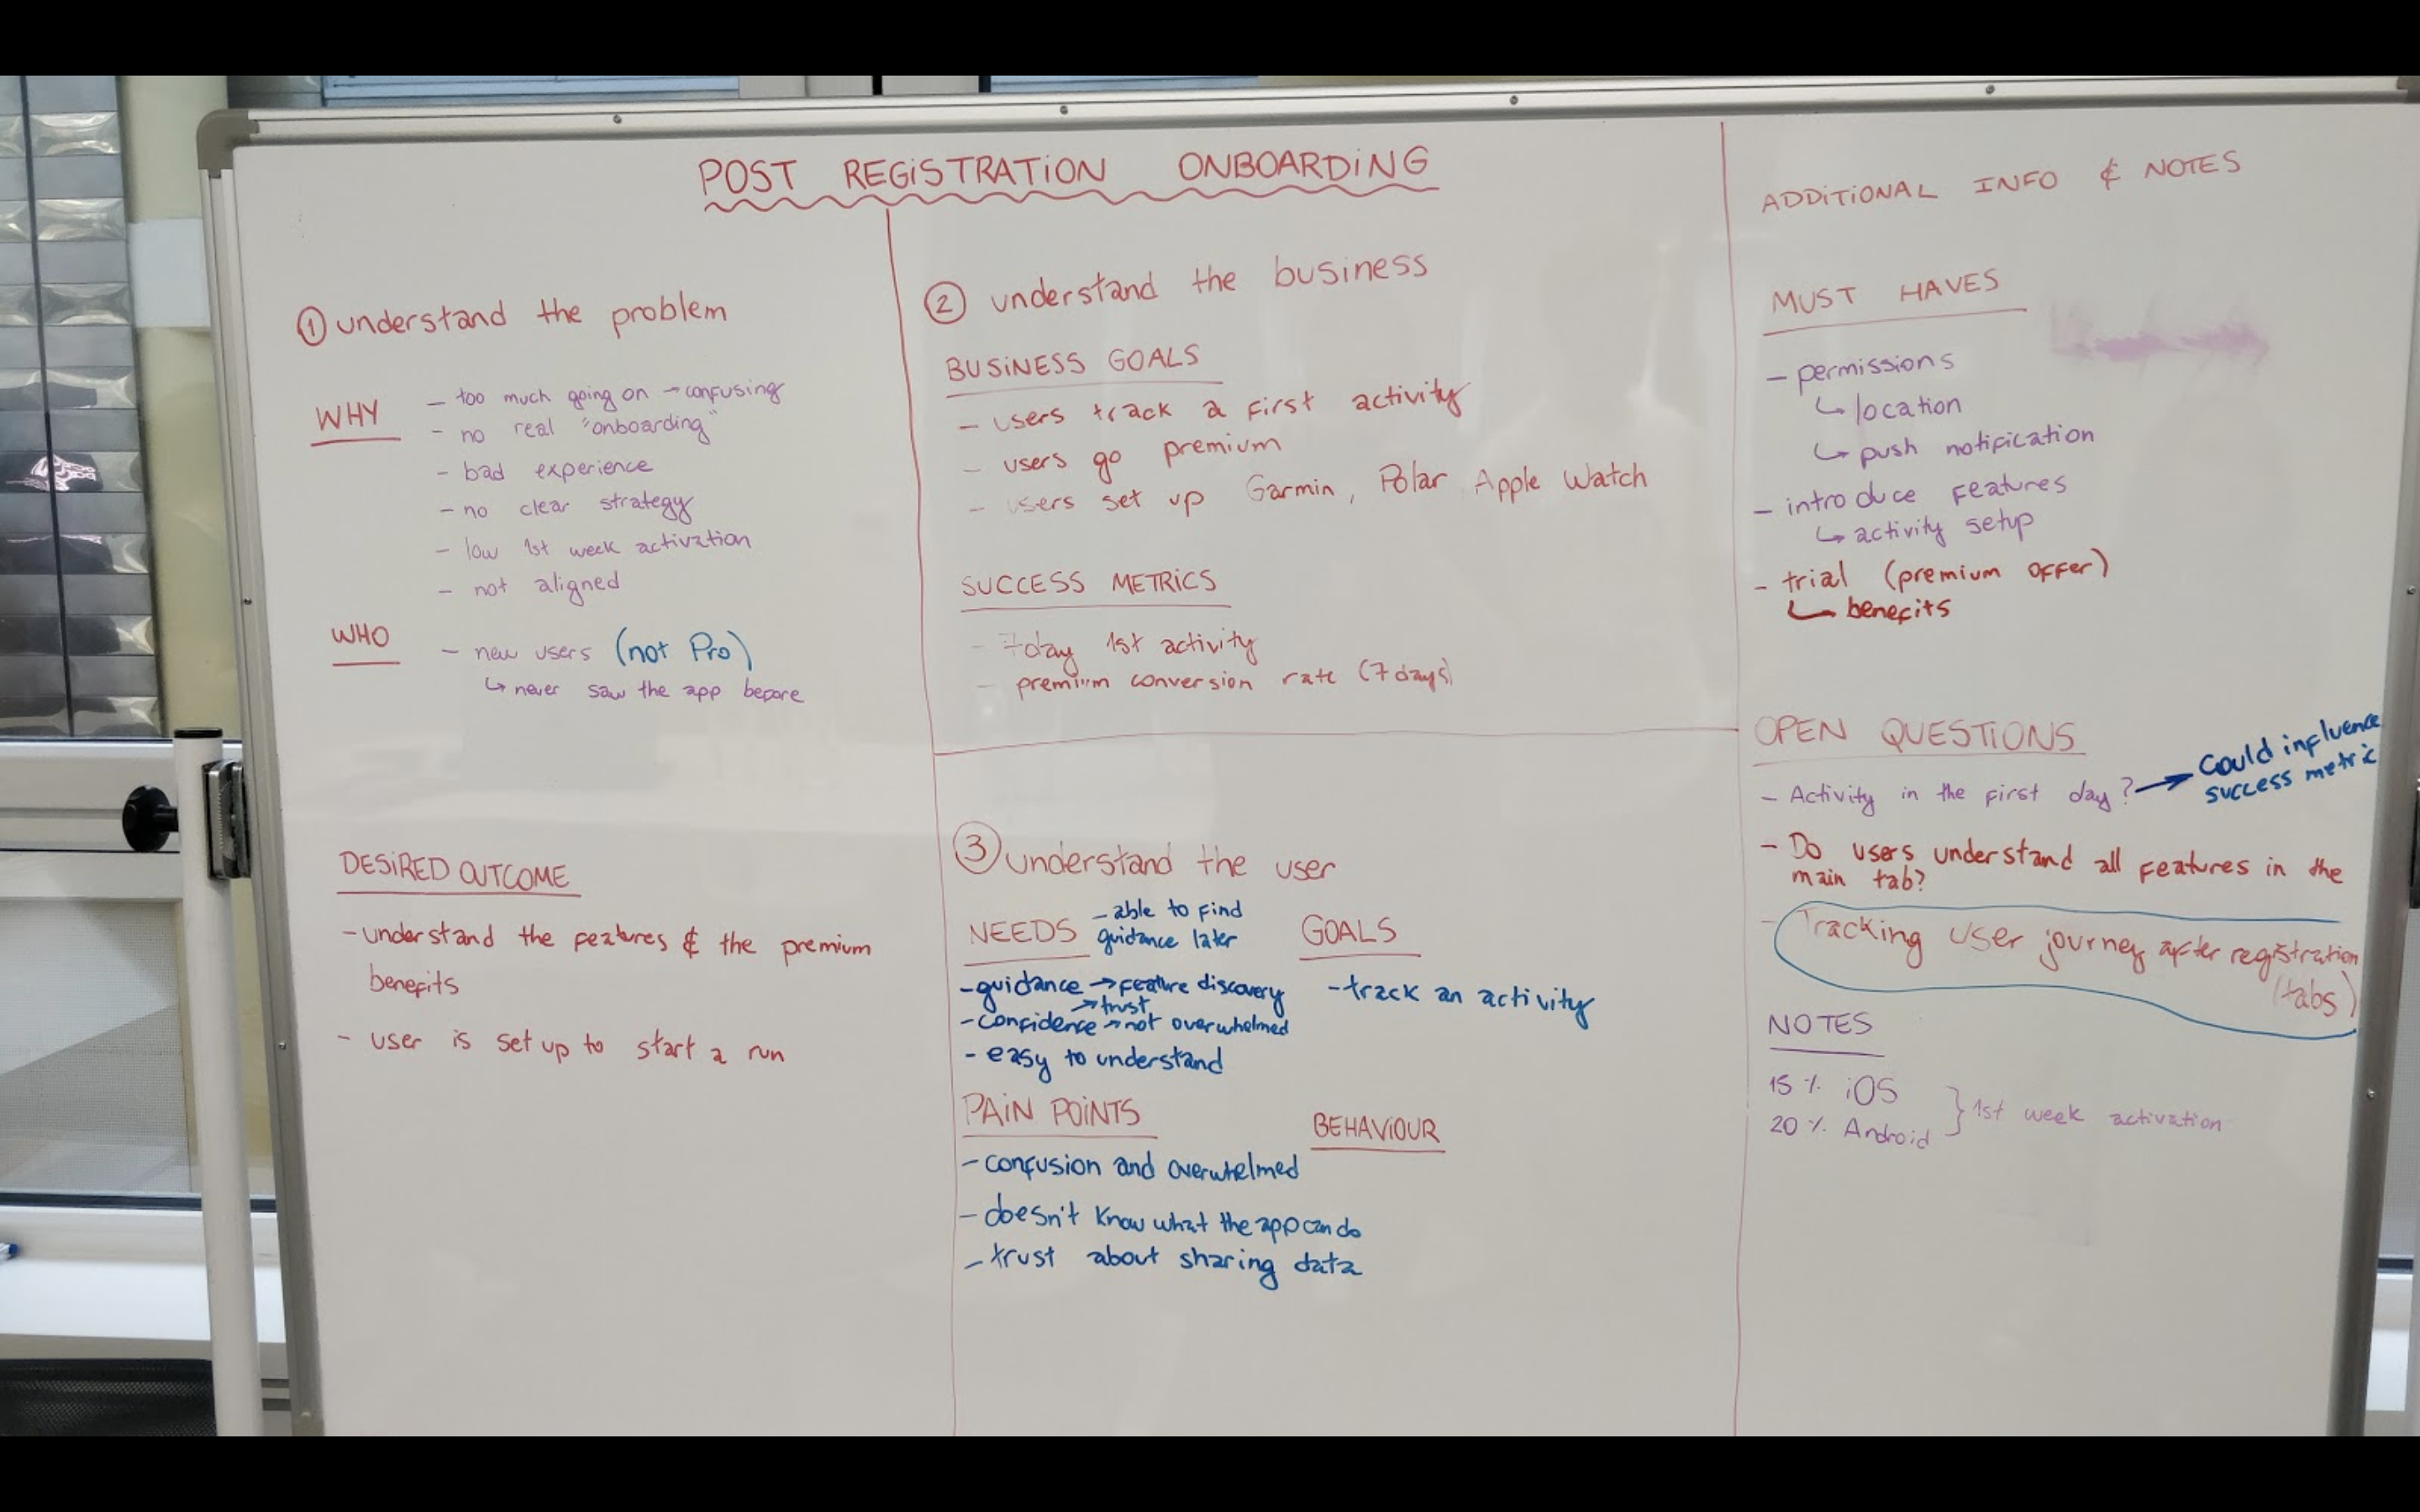 Whiteboard Mapping with Stakeholders